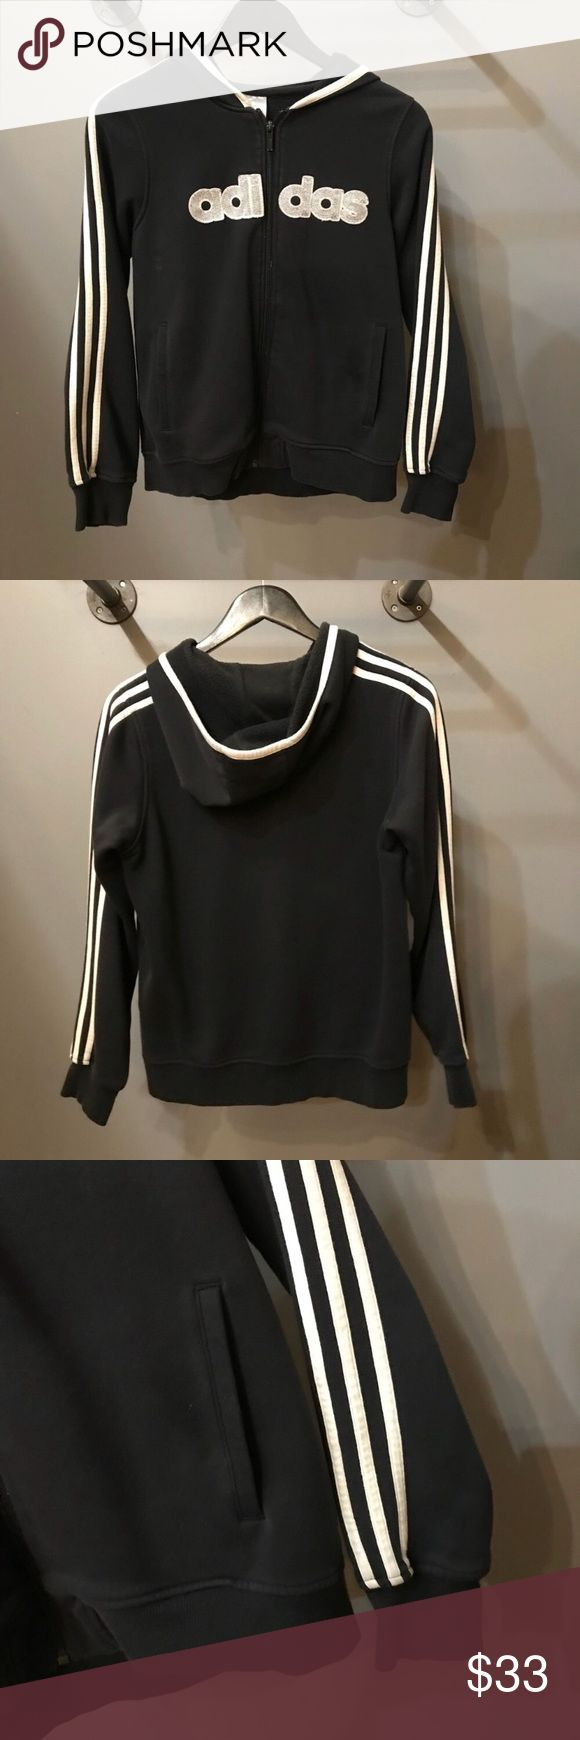 Adidas Black and White Striped Zip Up Hoodie ⚜️I love receiving offers through the offer button!⚜️ Good condition, as seen in pictures! Fast same or next day shipping!📨 Open to offers but I don't negotiate in the comments so please use the offer button😊 Check out the rest of my closet for more Adidas, Lululemon, Tory Burch, Urban Outfitters, Free People, Anthropologie, Victoria's Secret, Sam Edelman, Topshop, Asos, Revolve, Brandy Melville, Zara, and American Apparel! adidas Jackets…